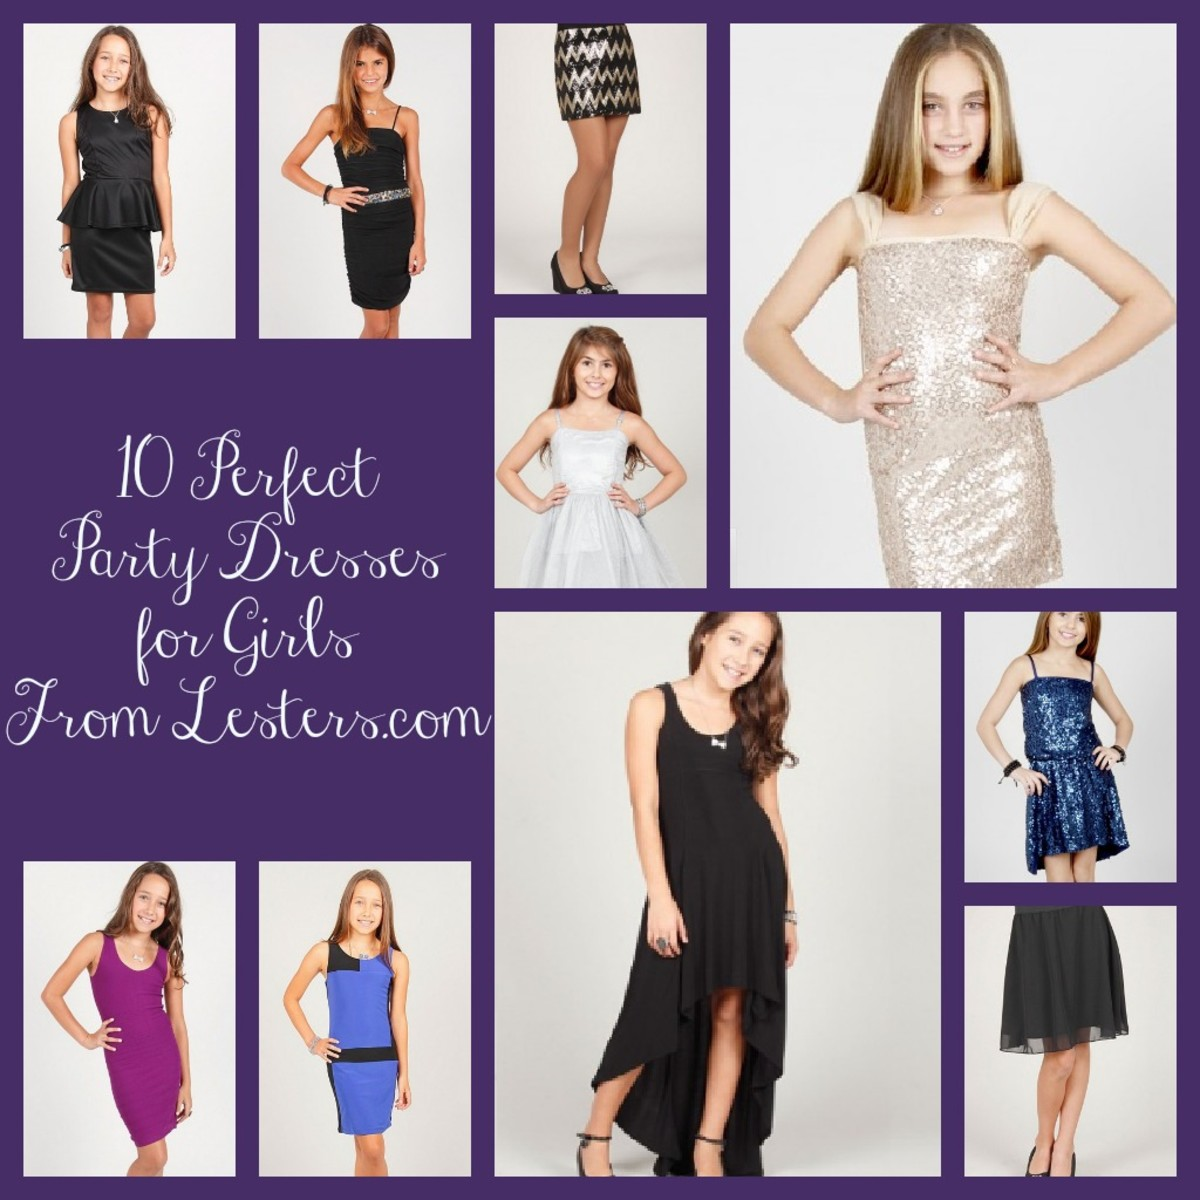 perfect party dresses for girls